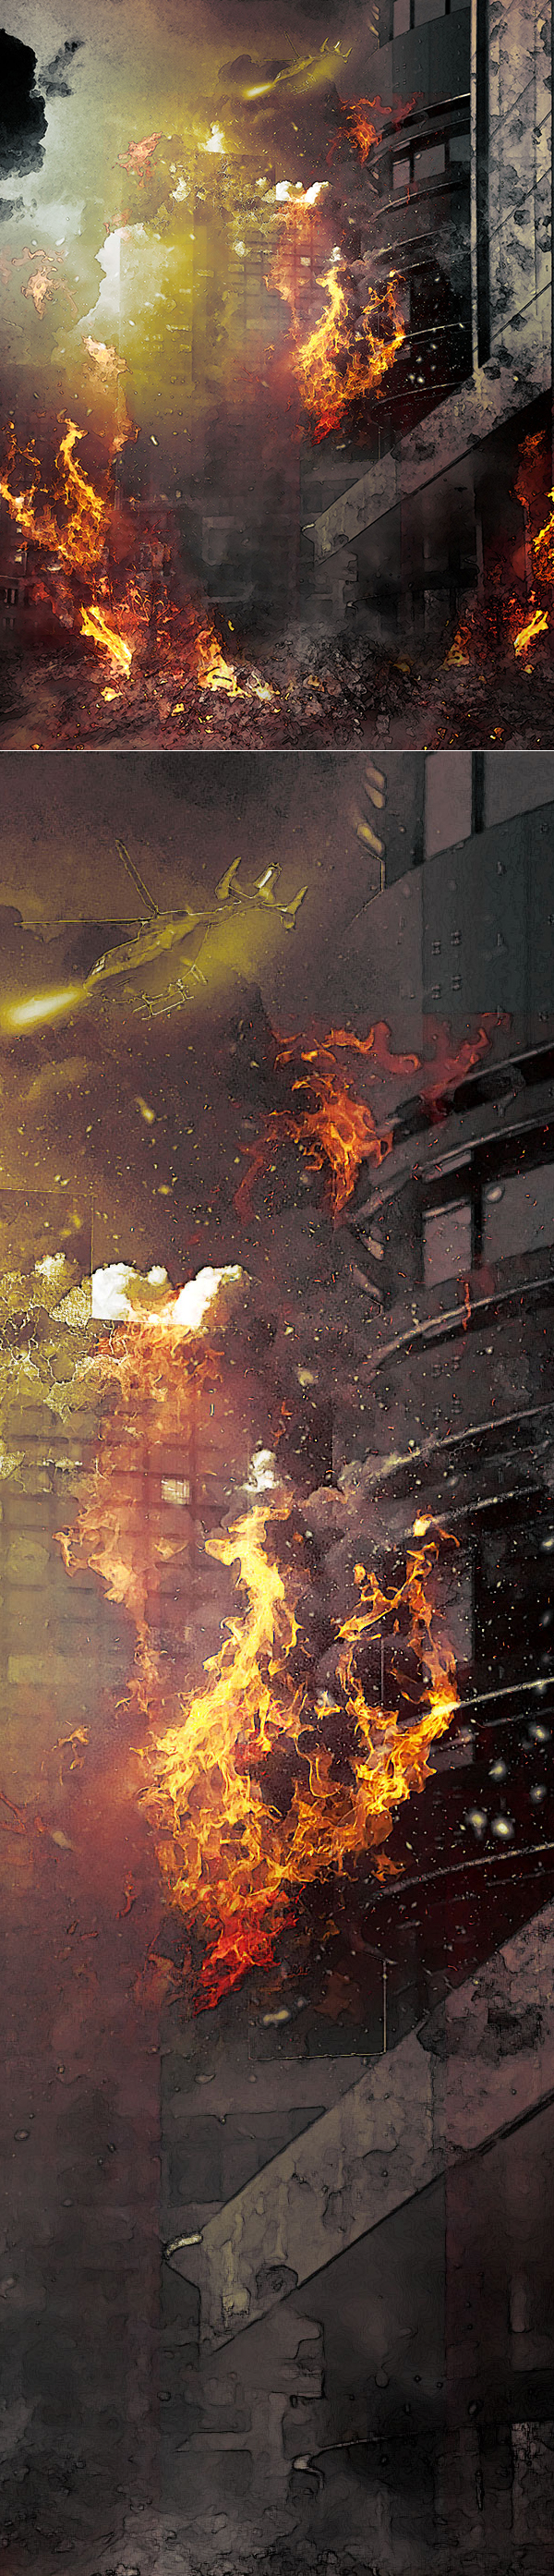 Create High-Rise Building on Fire Effect in Photoshop Tutorial